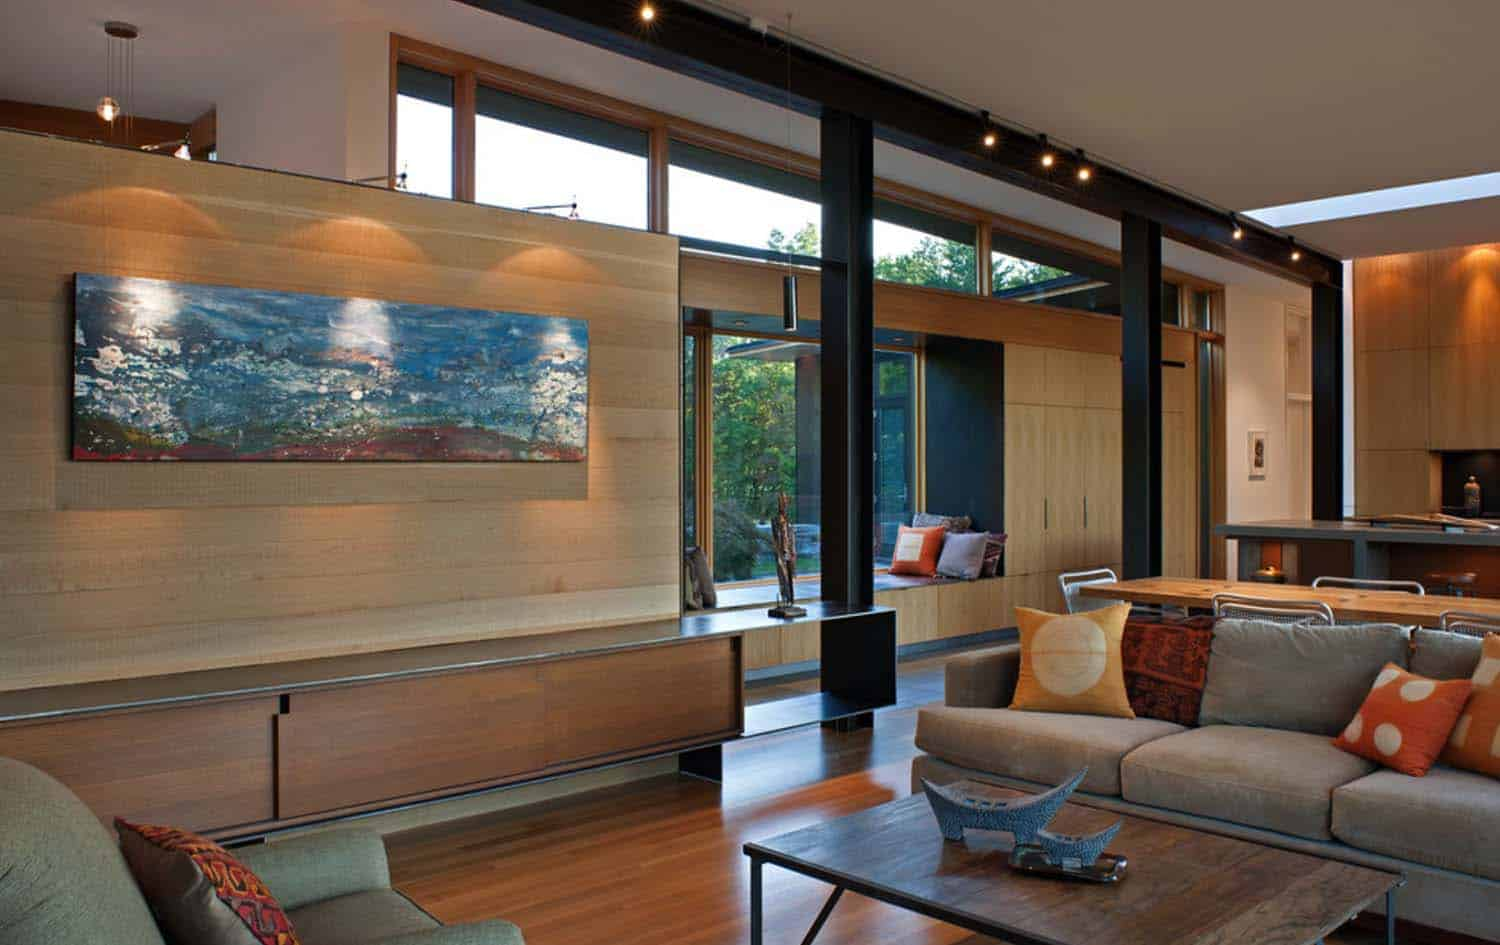 modern-lake-house-carlton-edwards-10-1-kindesign